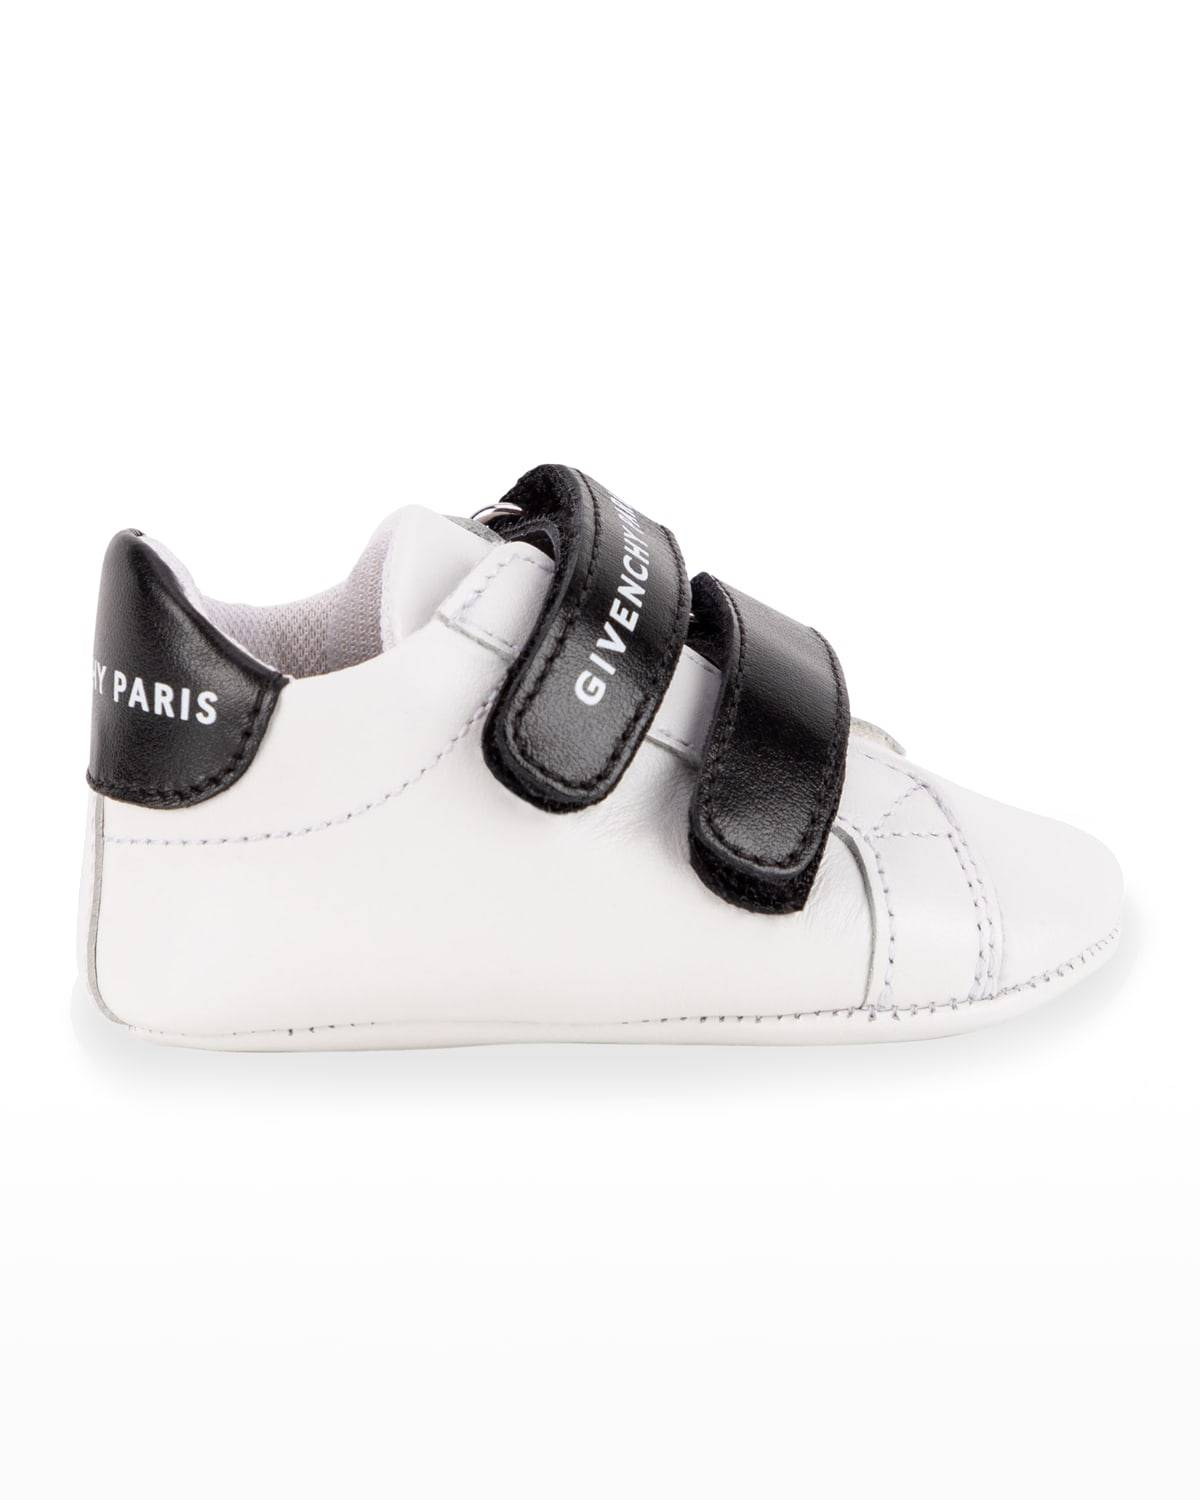 Kid's Bicolor Leather Low-Top Sneakers, Baby Sizes 3M-12M - Size: 19EU (9-12M US) - 10B WHITE